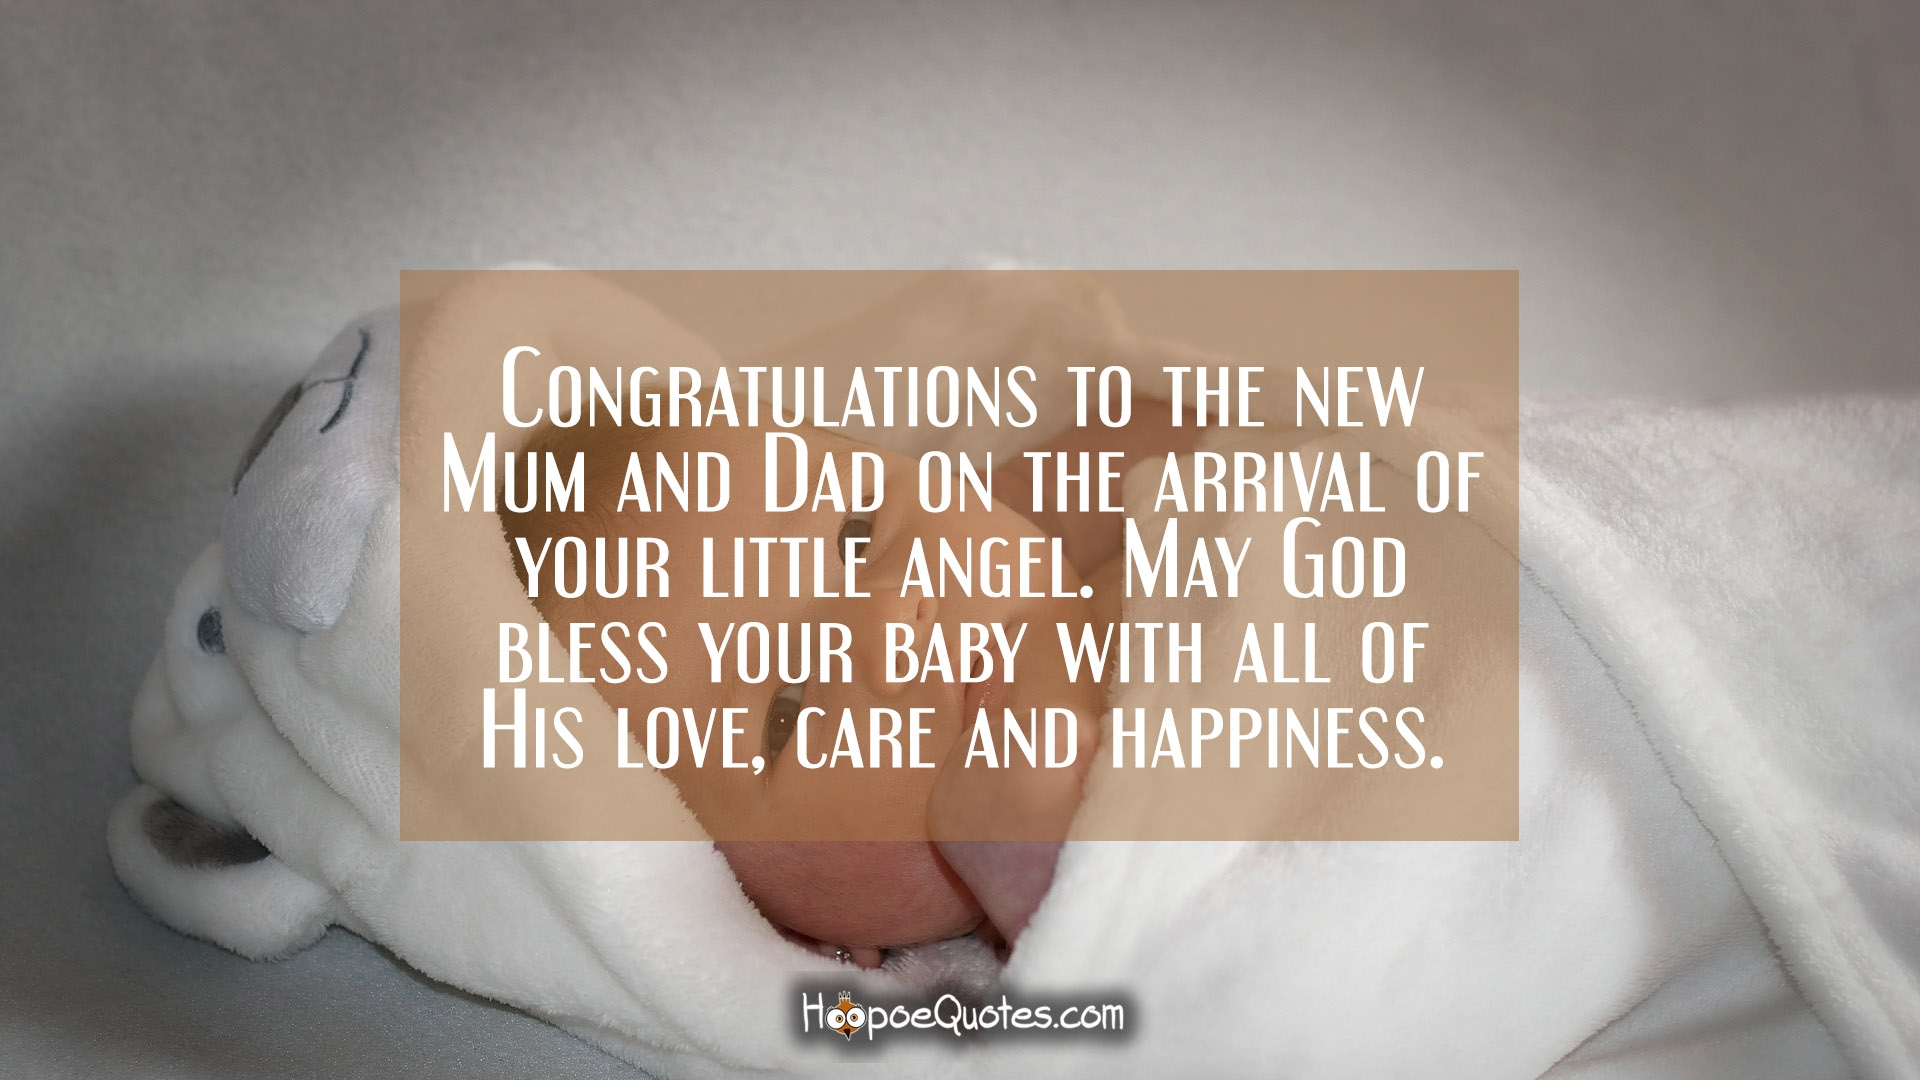 congratulations to the new mum and dad on the arrival of your little angel  may god bless your